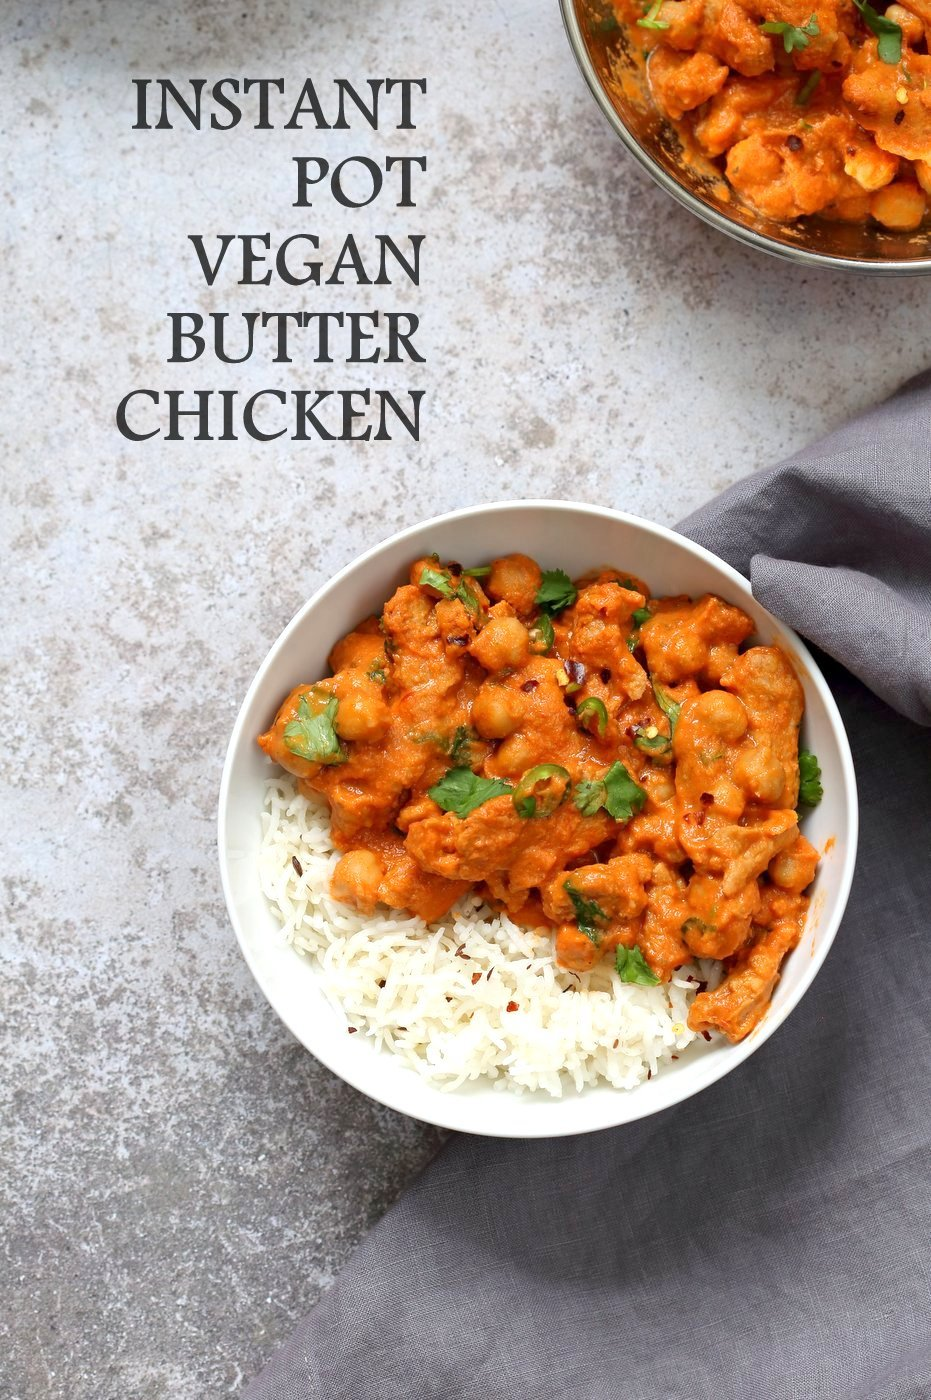 Instant Pot Vegan Butter Chicken with Soy Curls and Chickpeas - oil-free